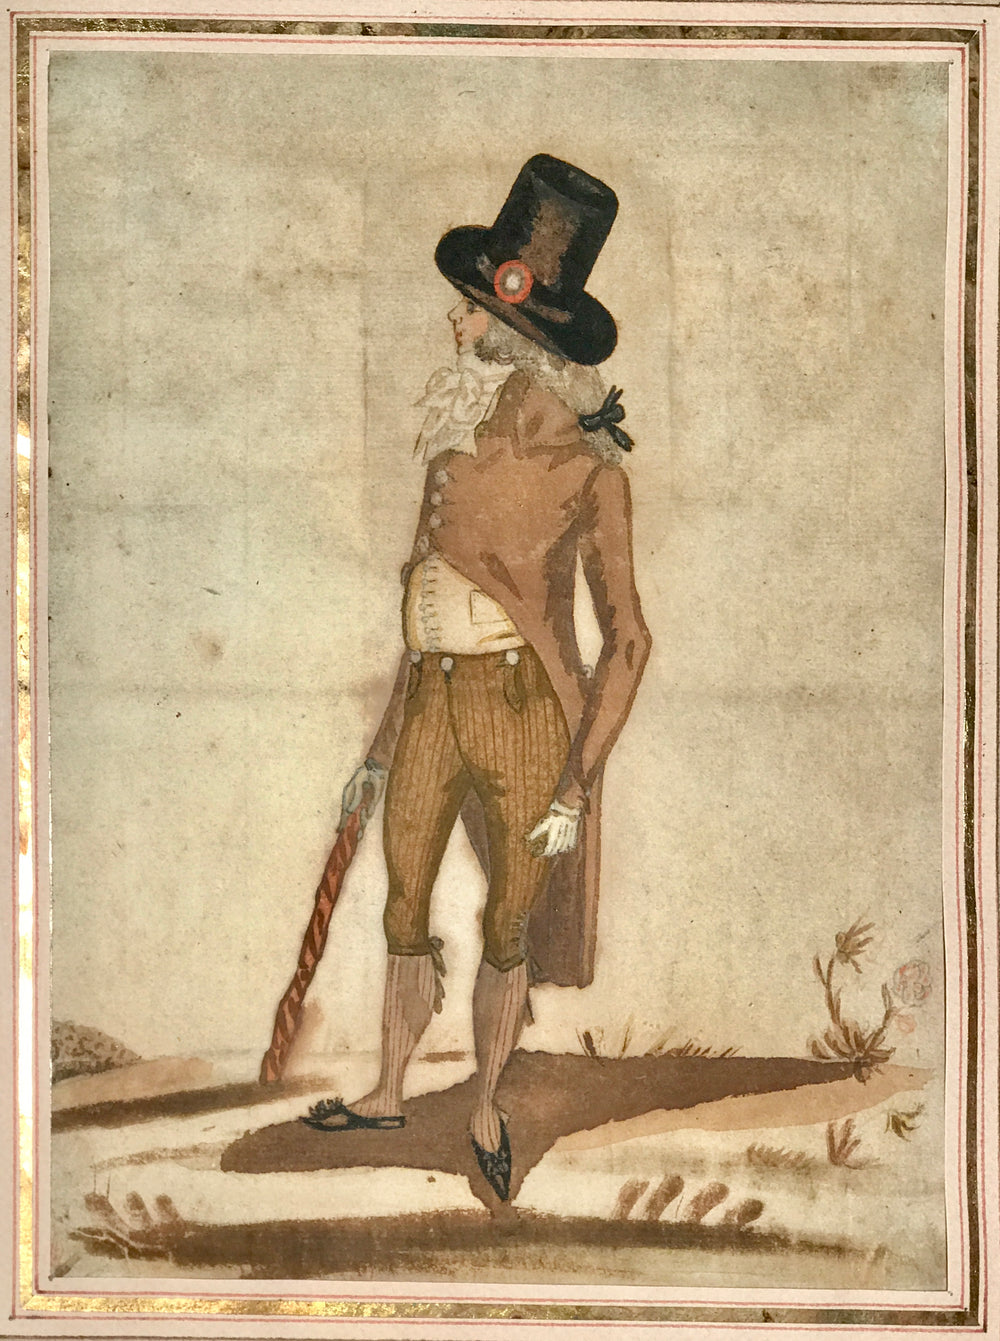 Drawing of a Représentant du Peuple wearing top hate cockade and his twisted cane.